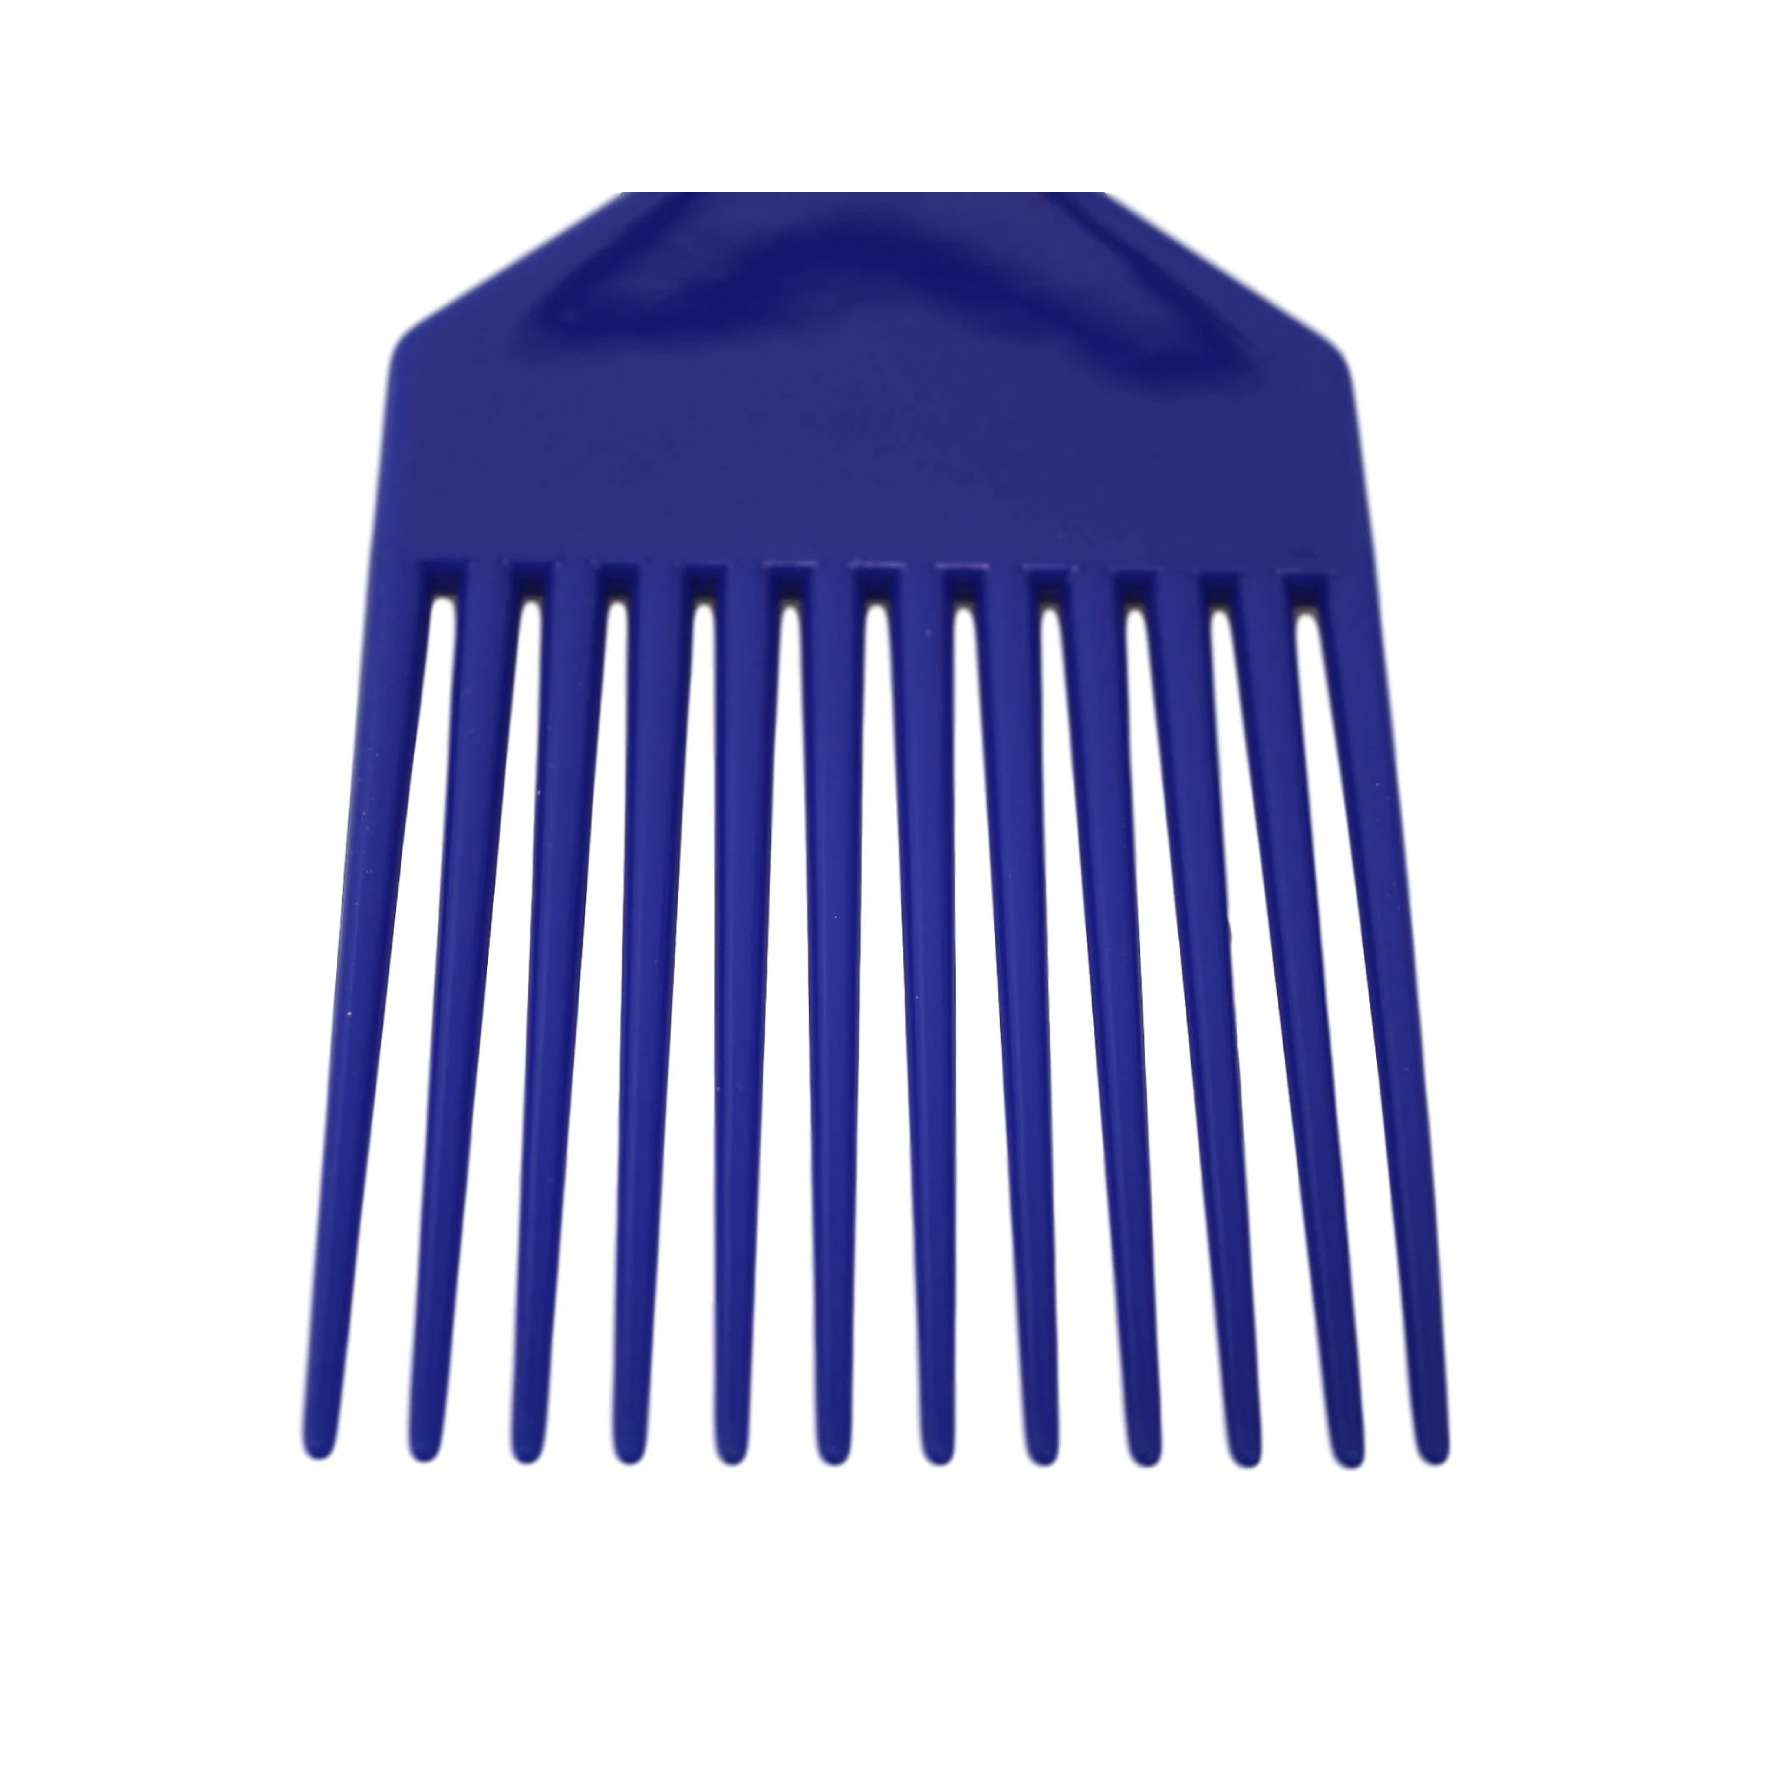 Professional 3 Piece AFRO Styling Hair Comb Long Teeth Untangling Comb 18 x 7cm